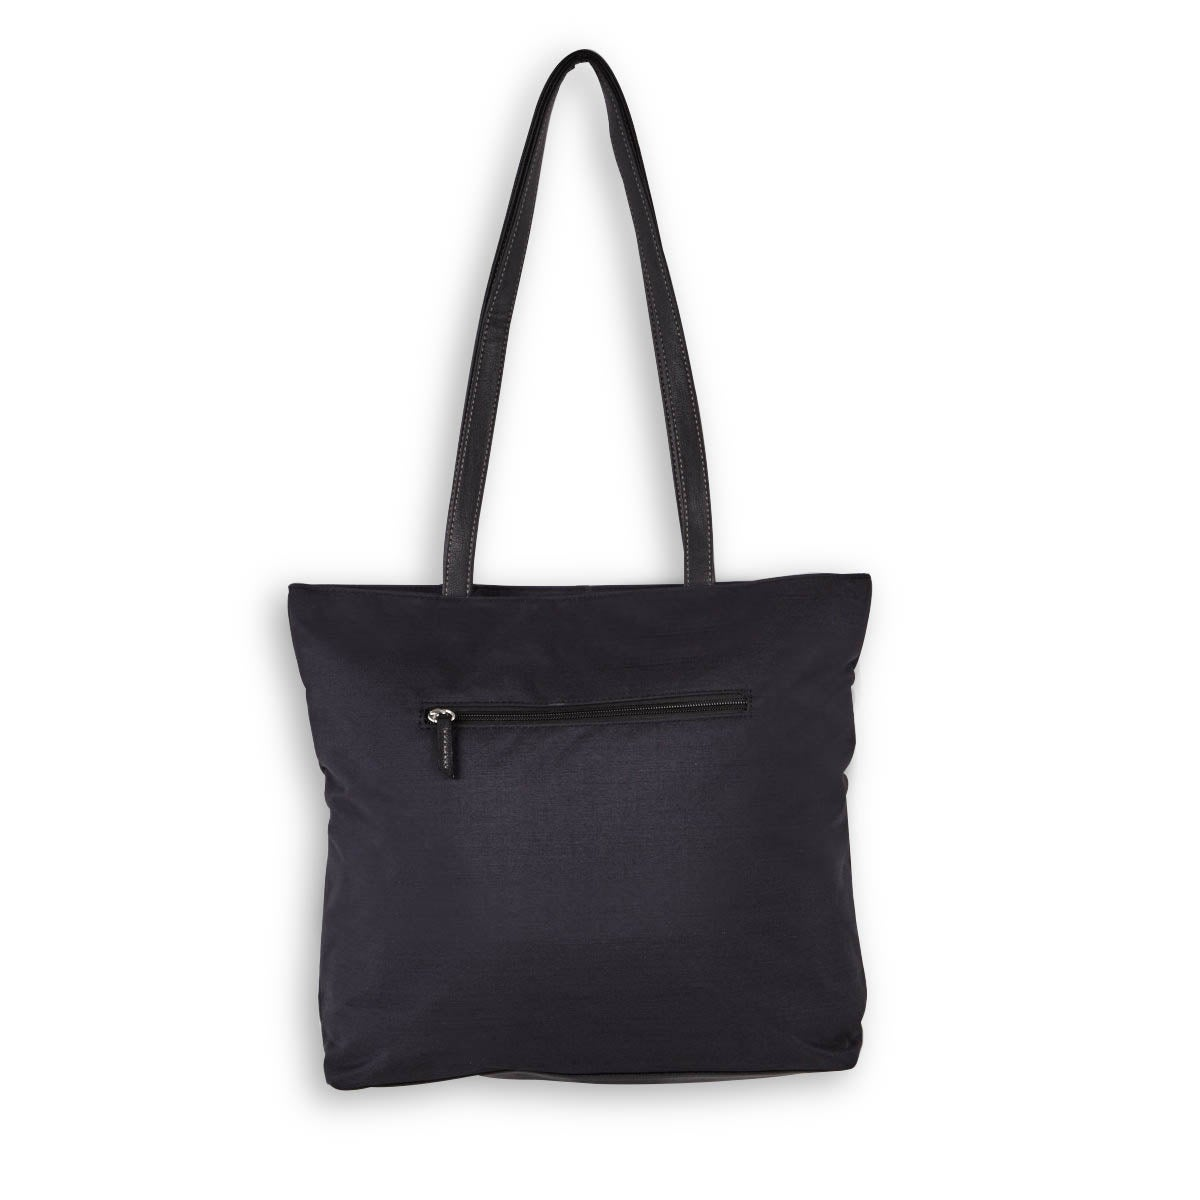 Lds Roots73 black large tote bag